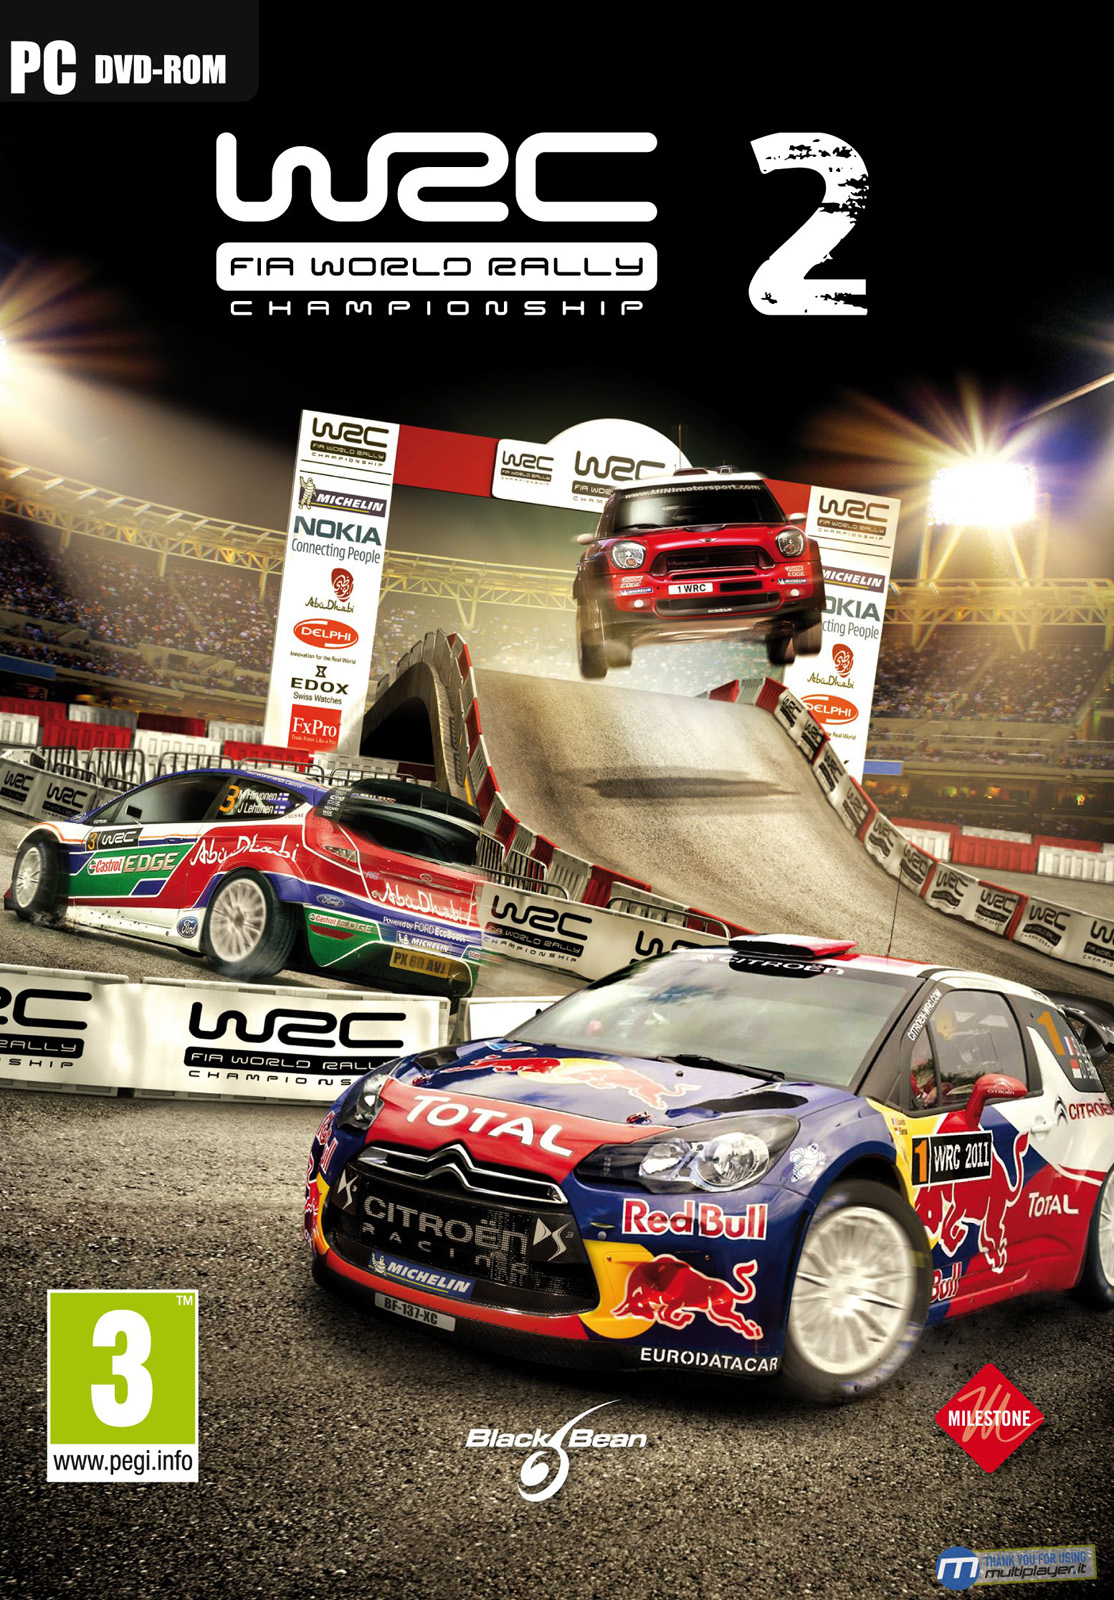 Скачать WRC FIA World Rally Championship Multi5 2011 без регистрации.